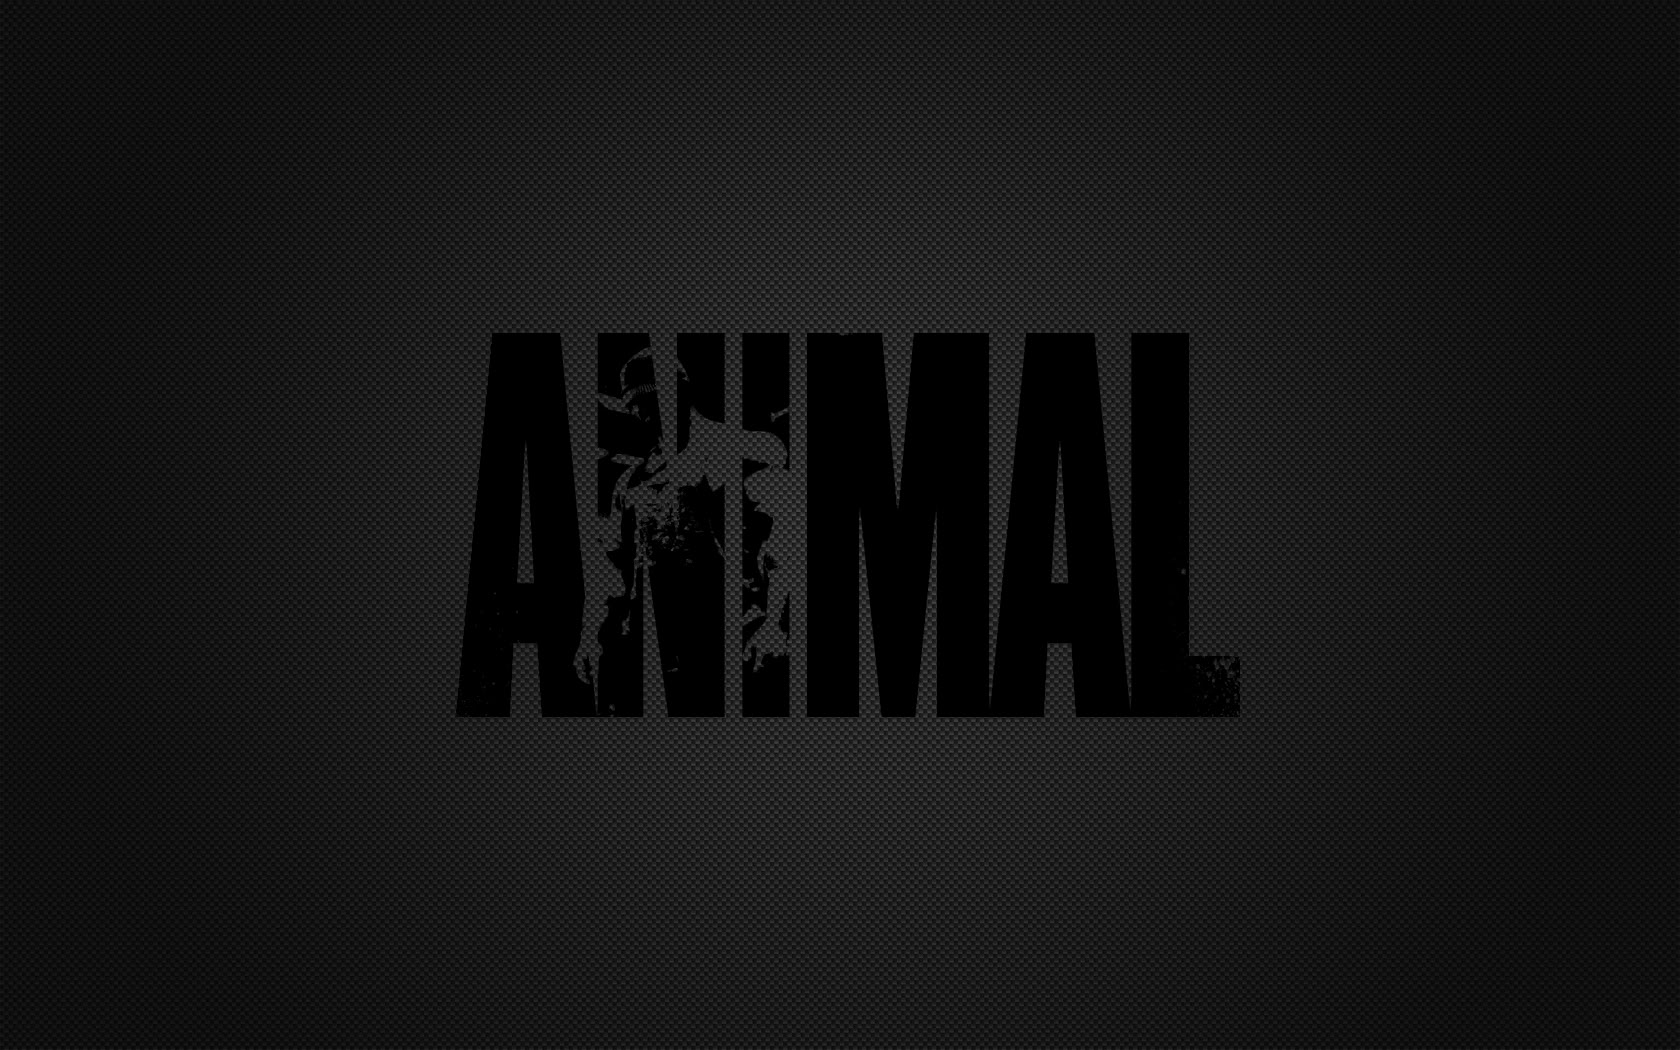 Animal Pak Wallpapers   Bodybuildingcom Forums 1680x1050